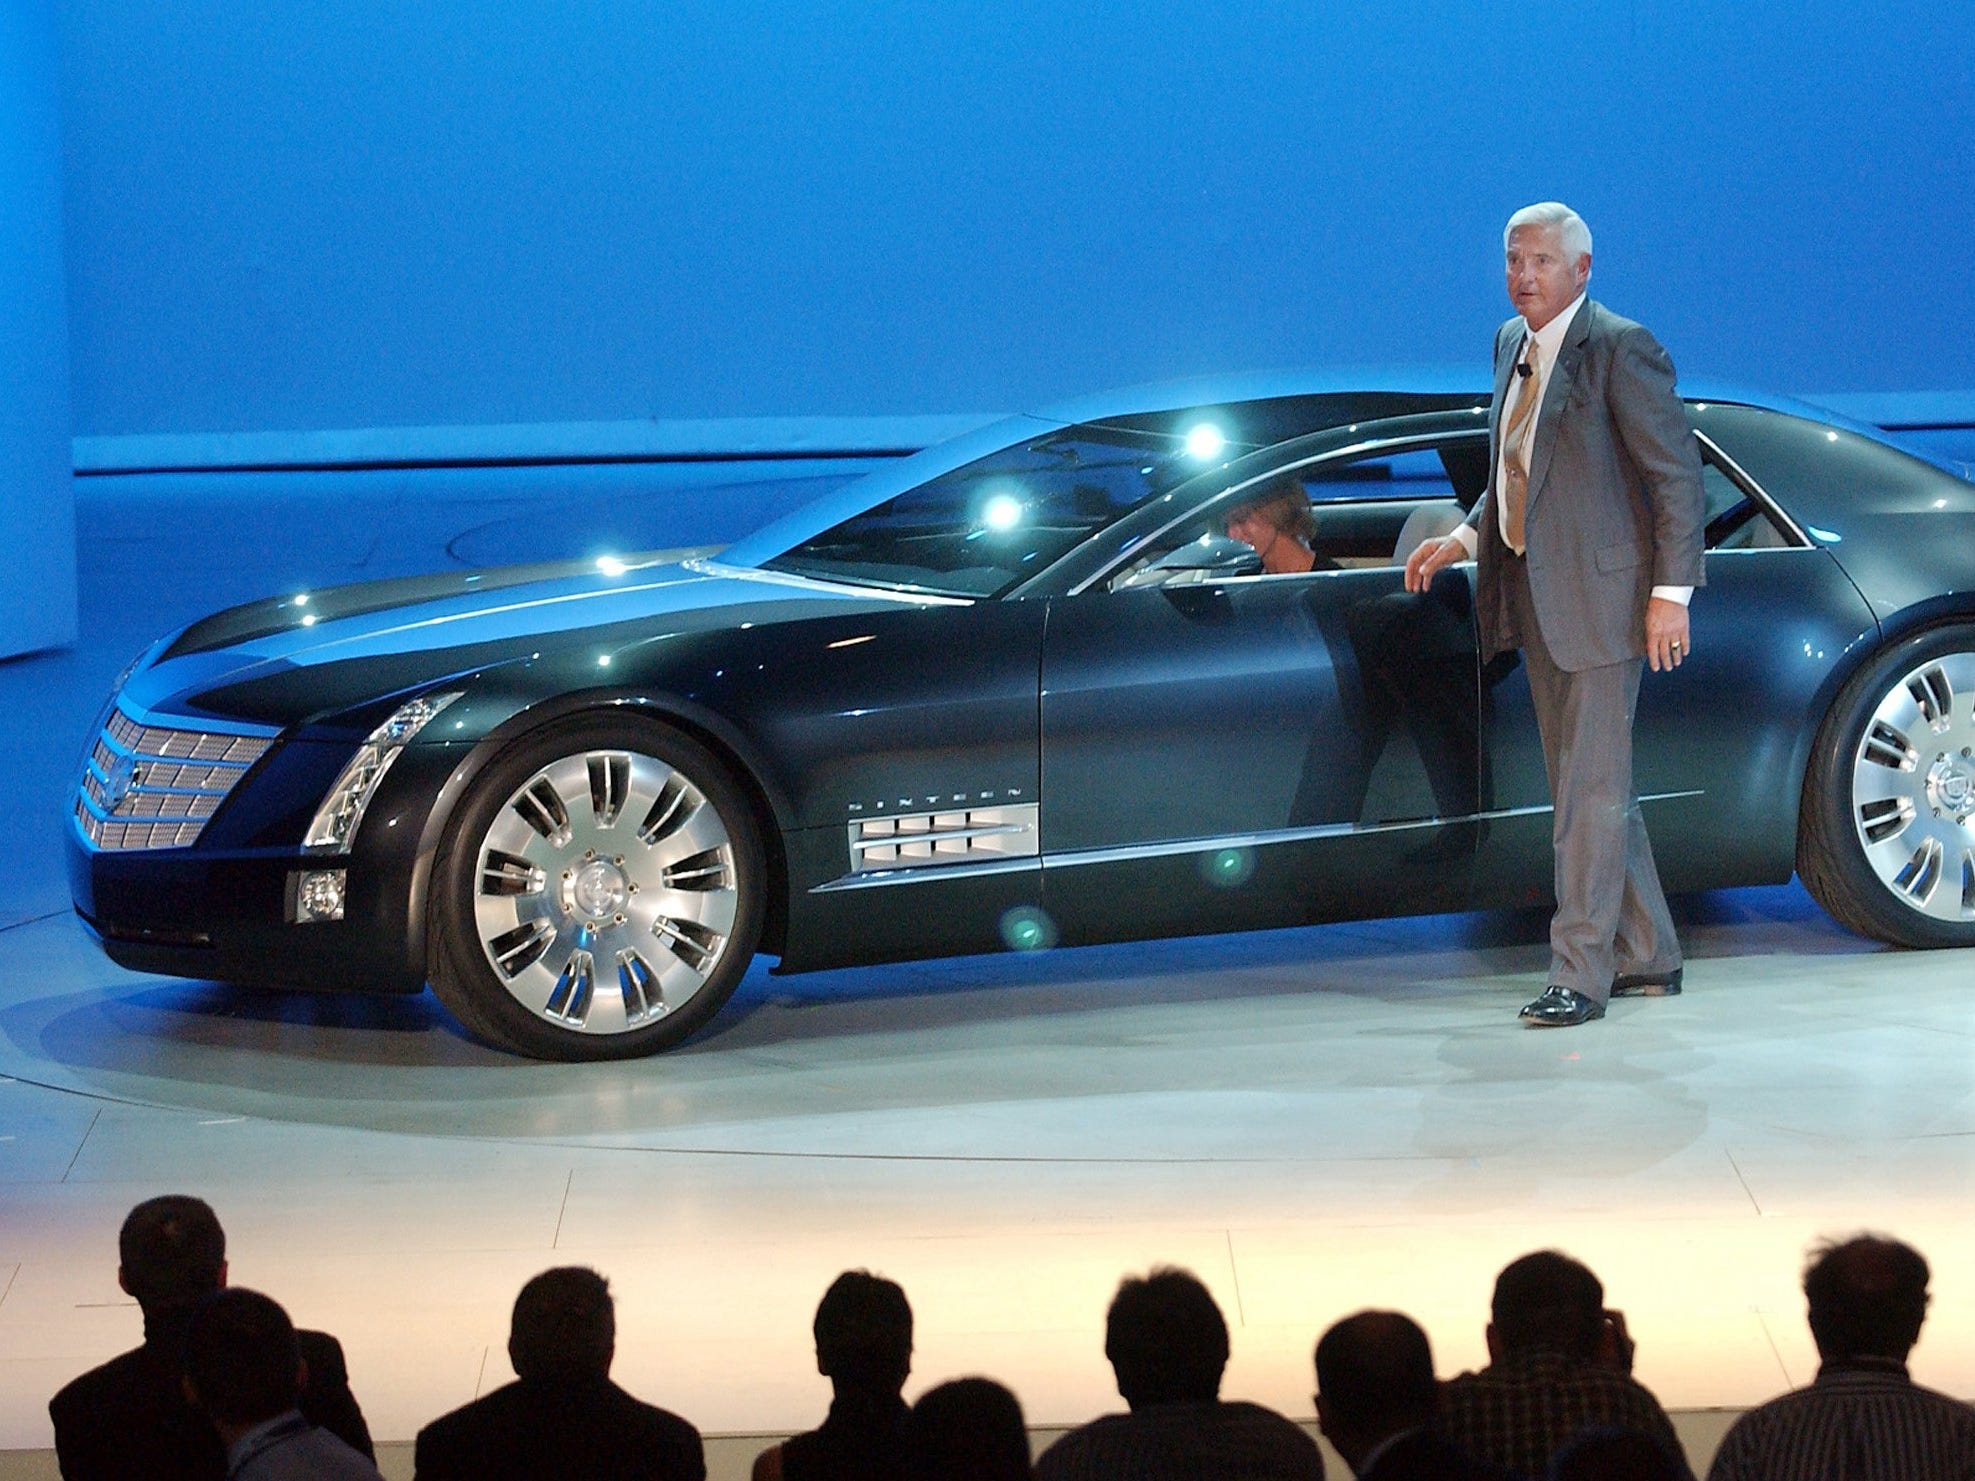 General Motors' Vice Chairman Bob Lutz reveals the Cadillac Sixteen concept vehicle at its gala unveiling at the Detroit Opera House in Detroit Sunday, January 5, 2003 as part of the North American Auto Show.